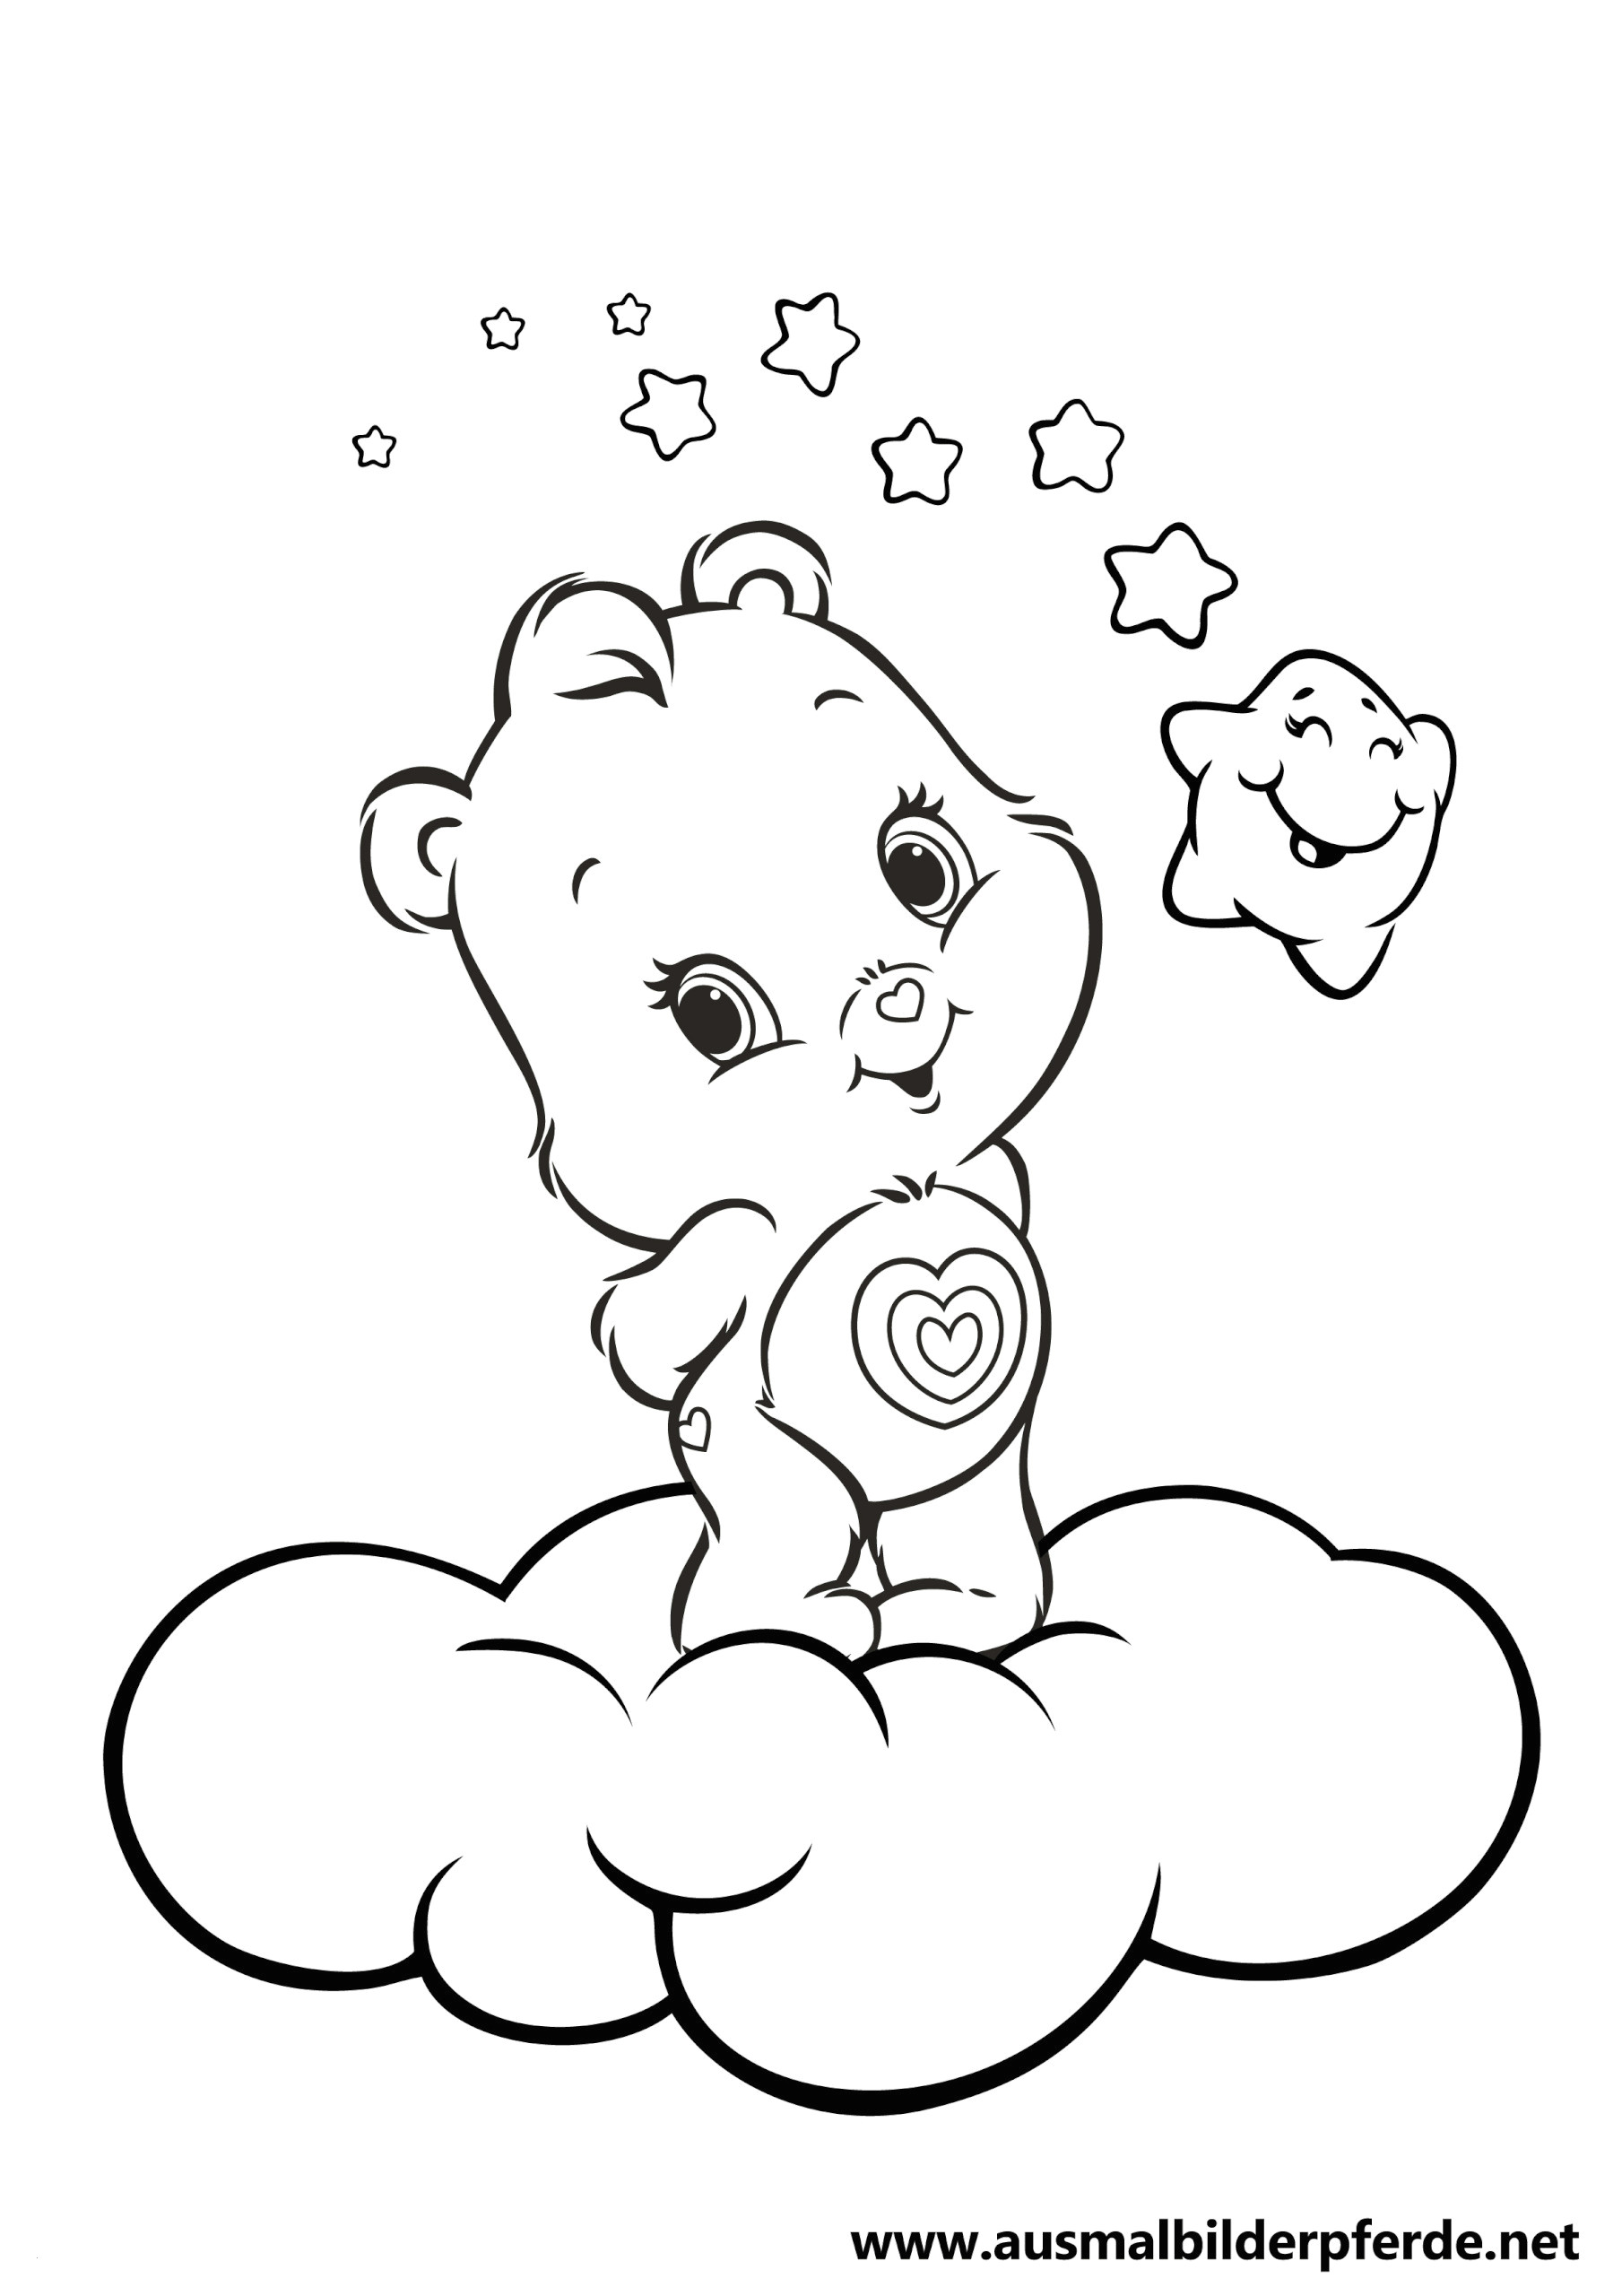 gallery of trolls zum ausmalen beau photos malvorlage book coloring pages best sol r coloring pages best 0d